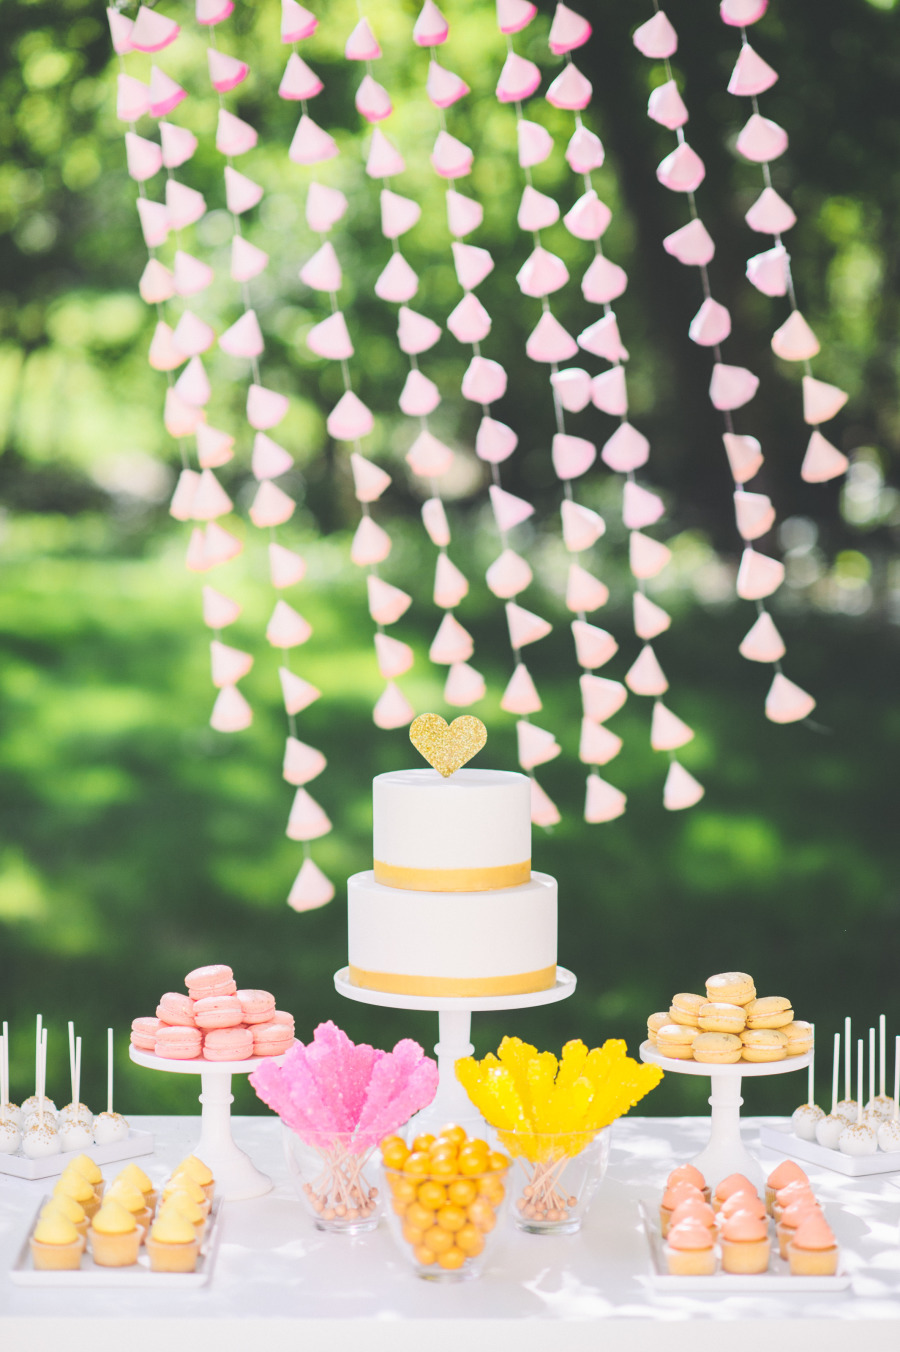 Vibrant wedding cake - Wedding cake ideas for summer